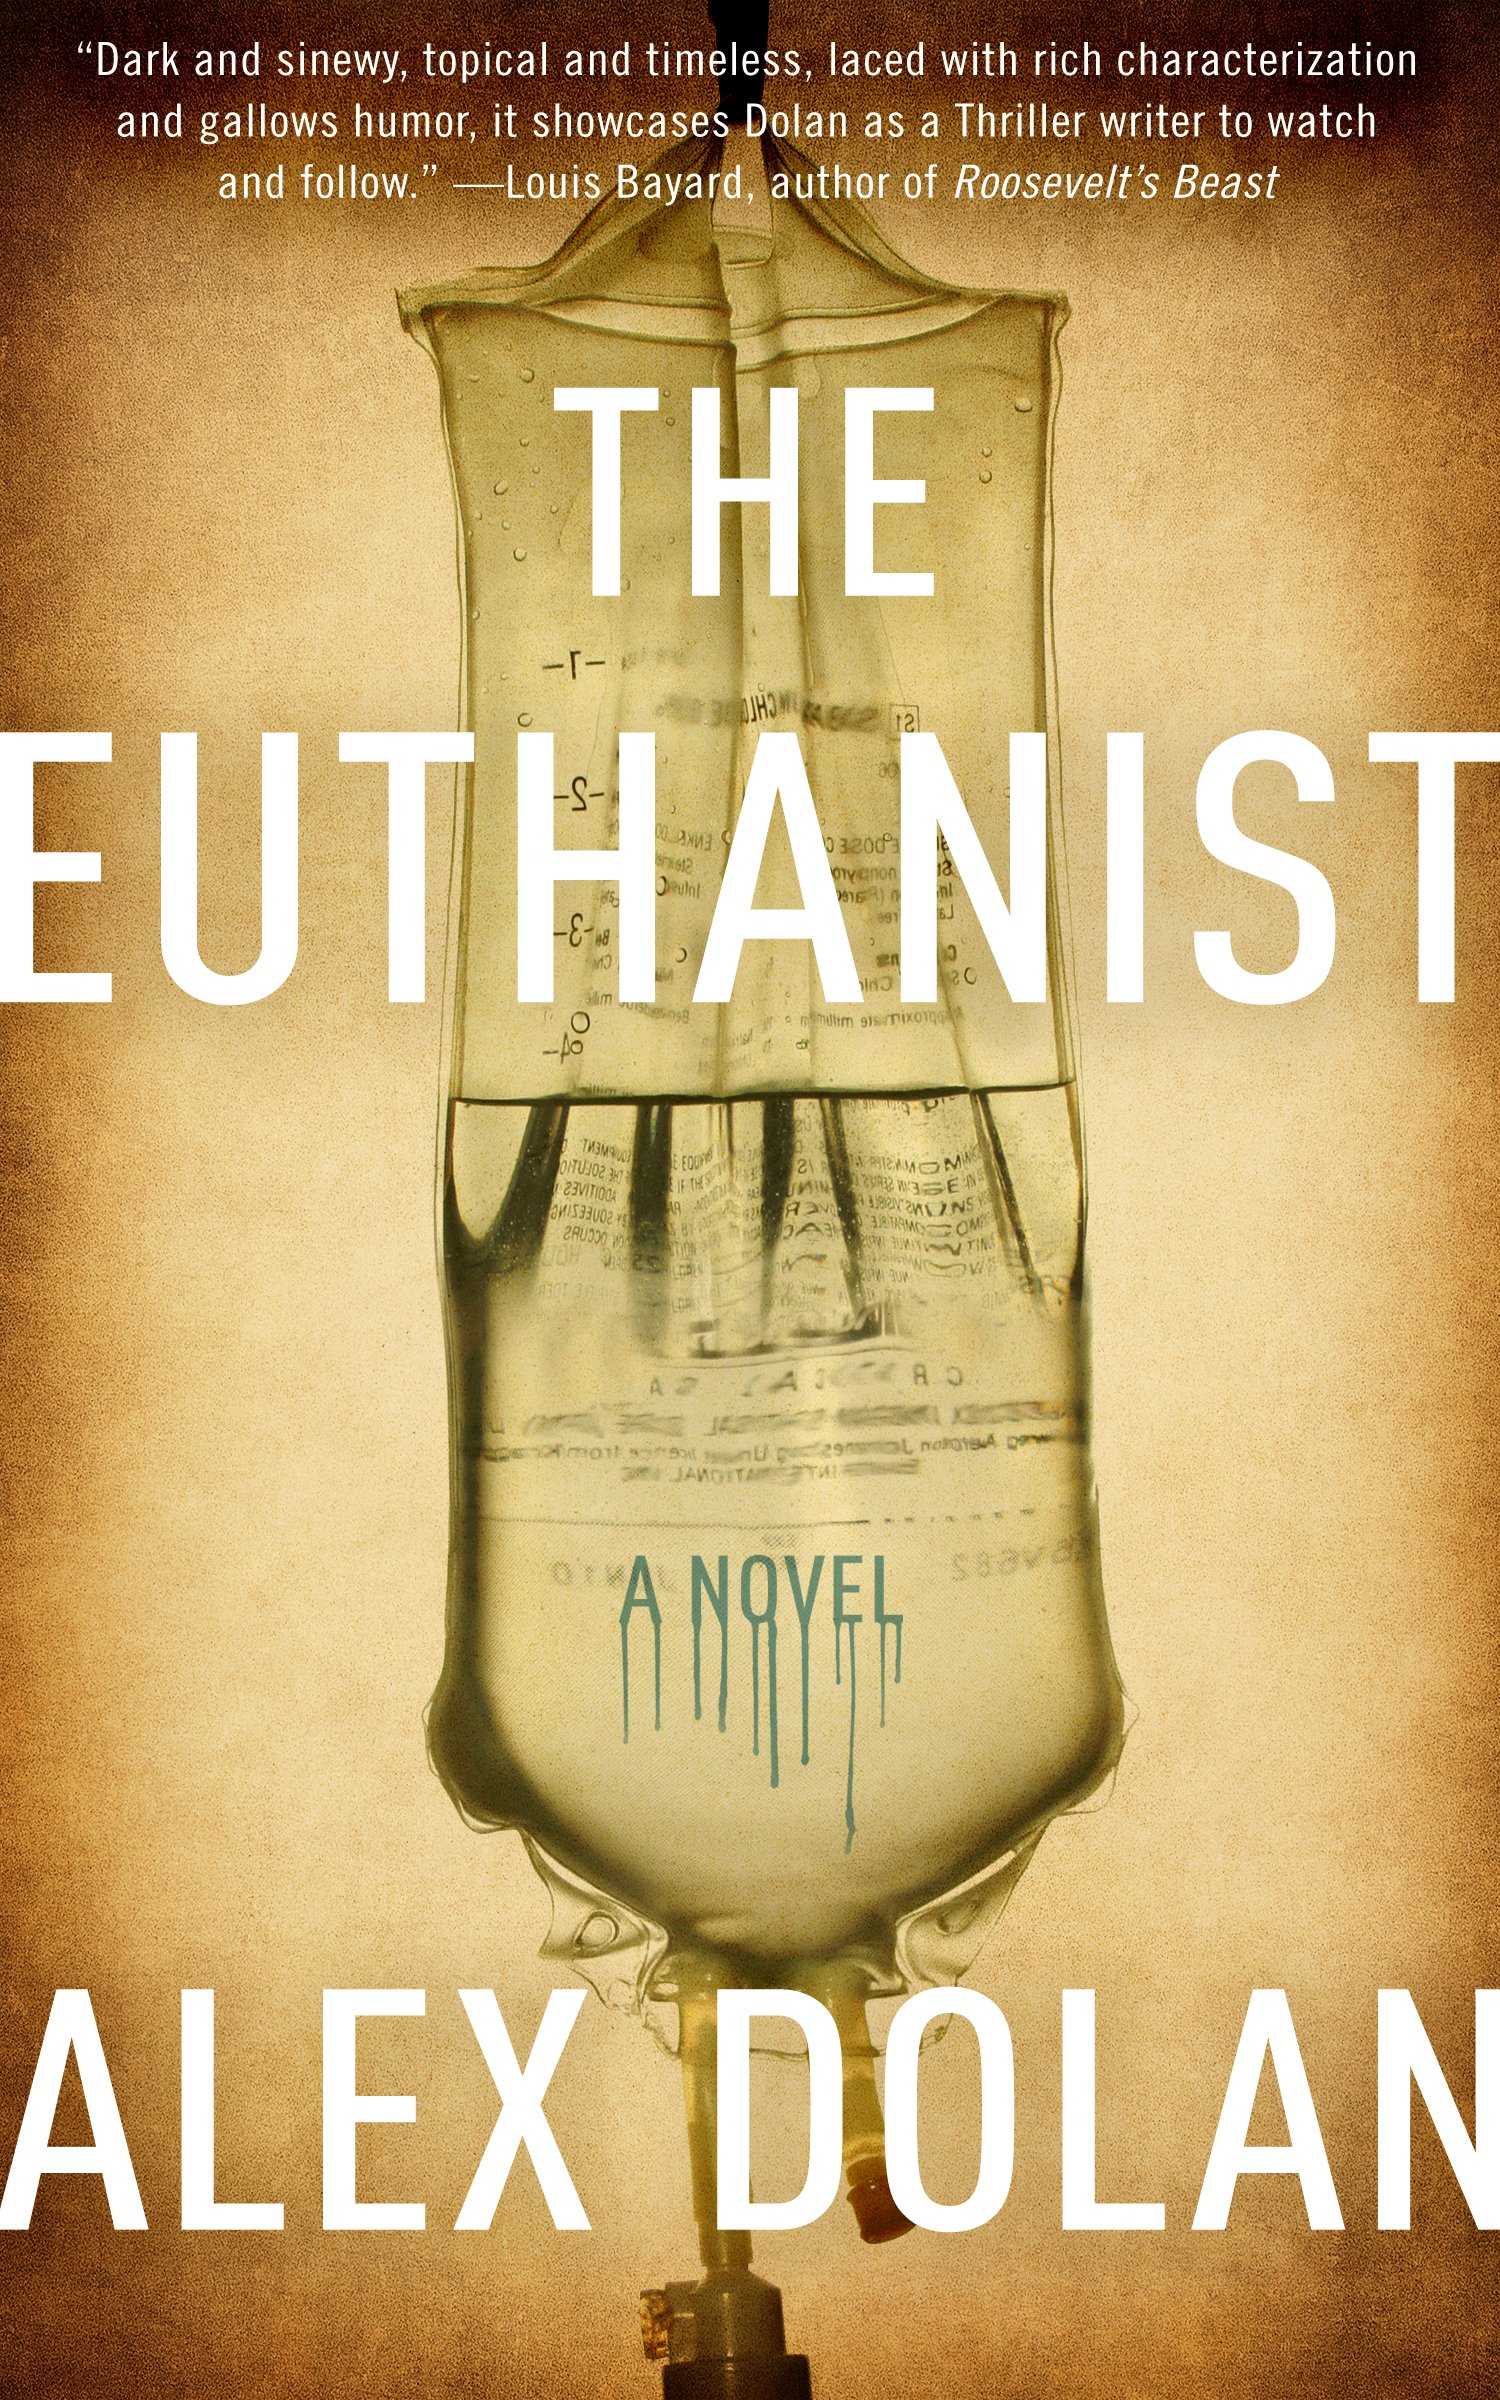 Image result for the euthanist alex dolan book cover